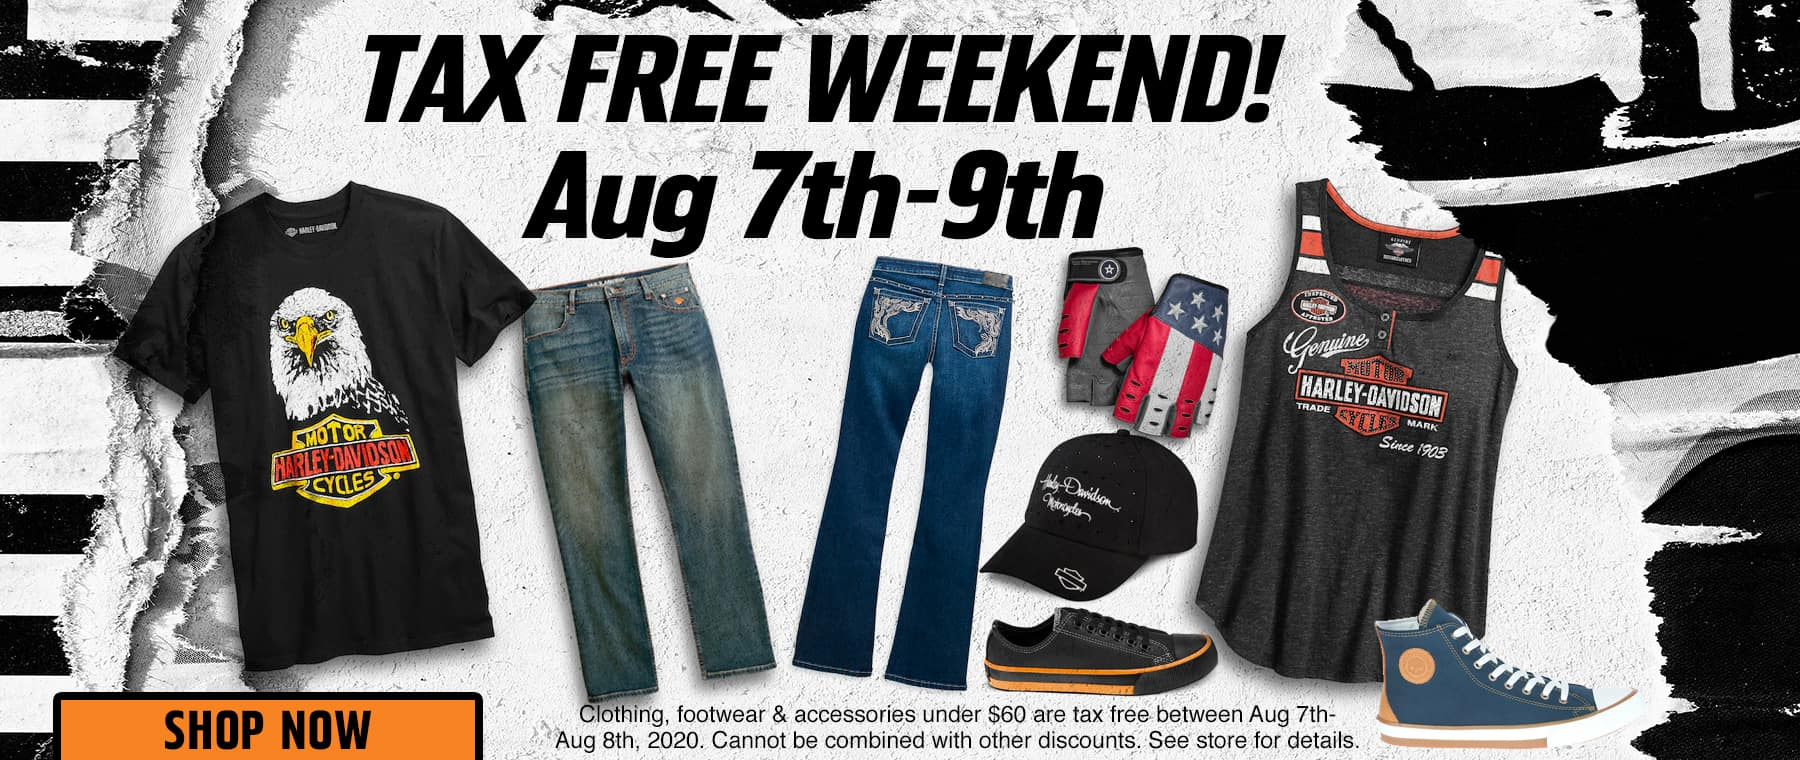 Tax FREE Weekend!